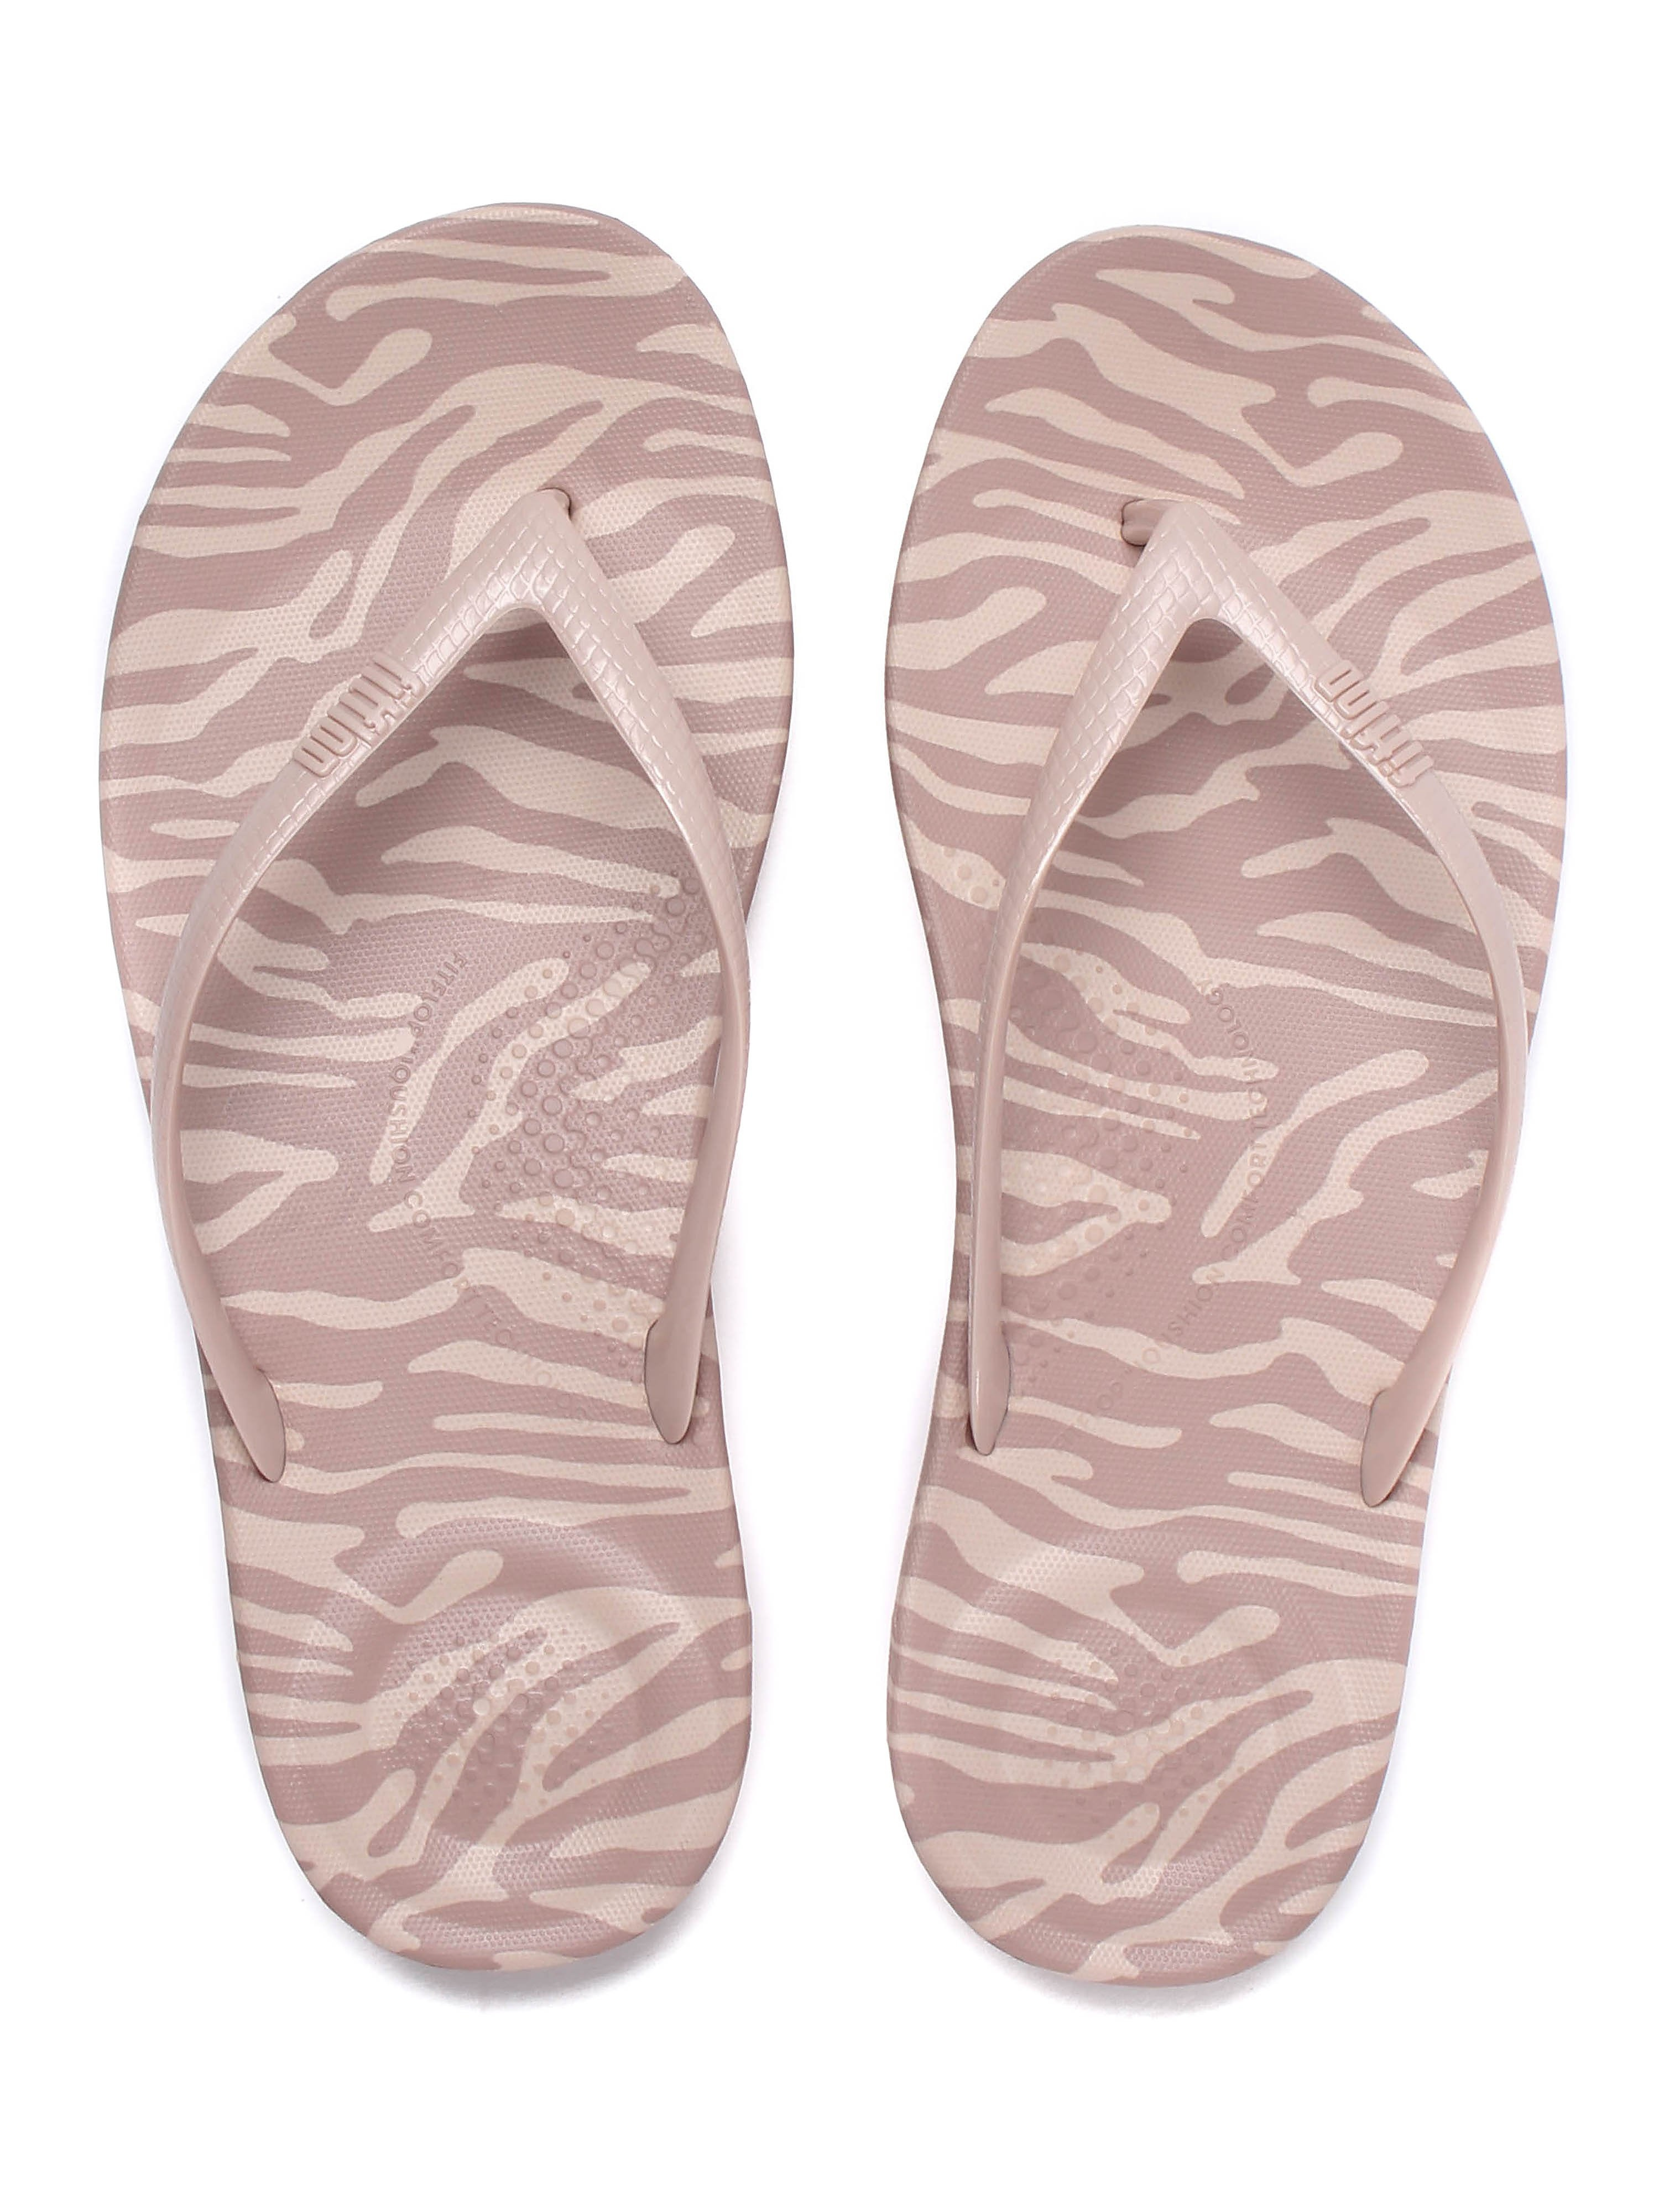 FitFlop Women's IQushion Ergonomic Flip Flops - Nude Tiger Print